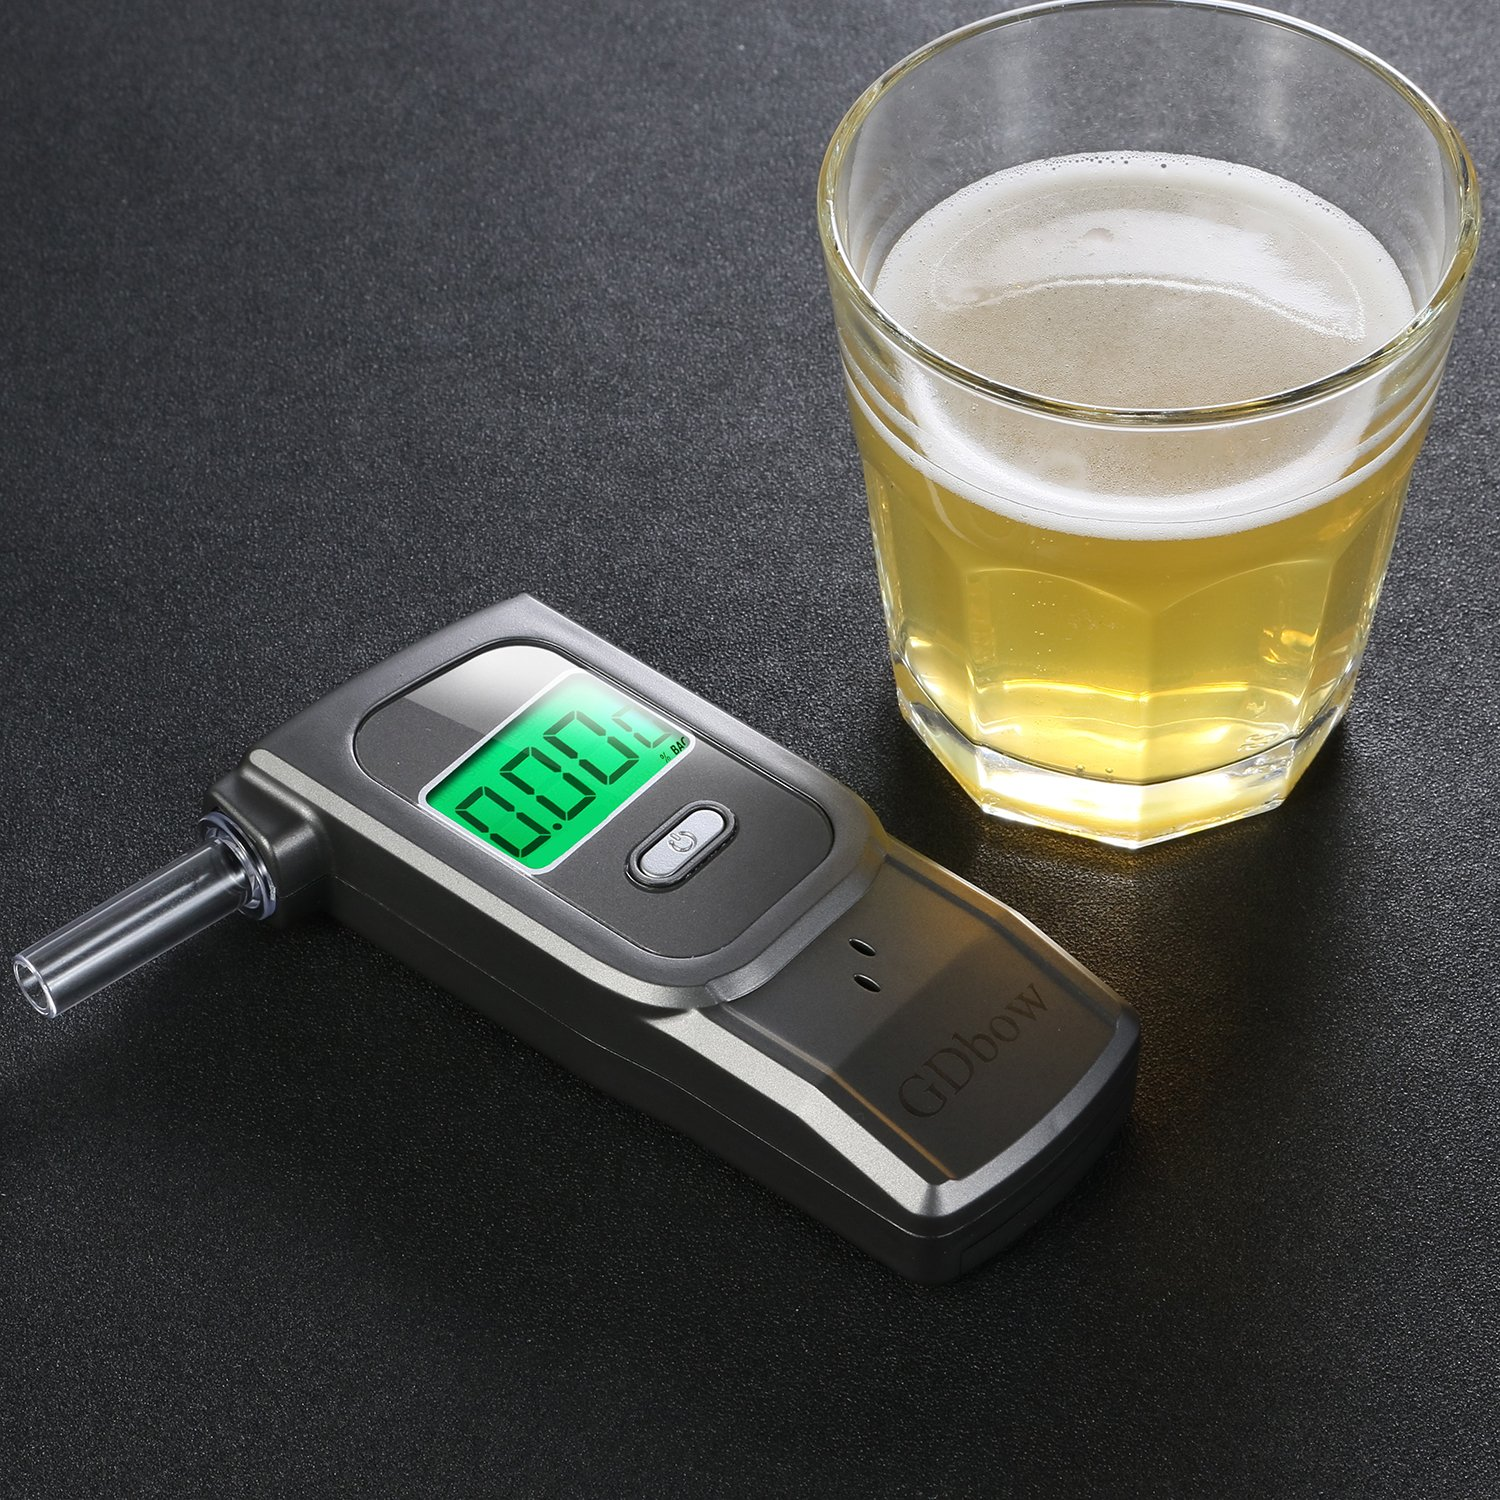 GDbow PortableBreathalyzer AlcoholTester Recording 32 Testing Results with 5 Mouthpieces for Personal Use -Grey by GDbow (Image #3)